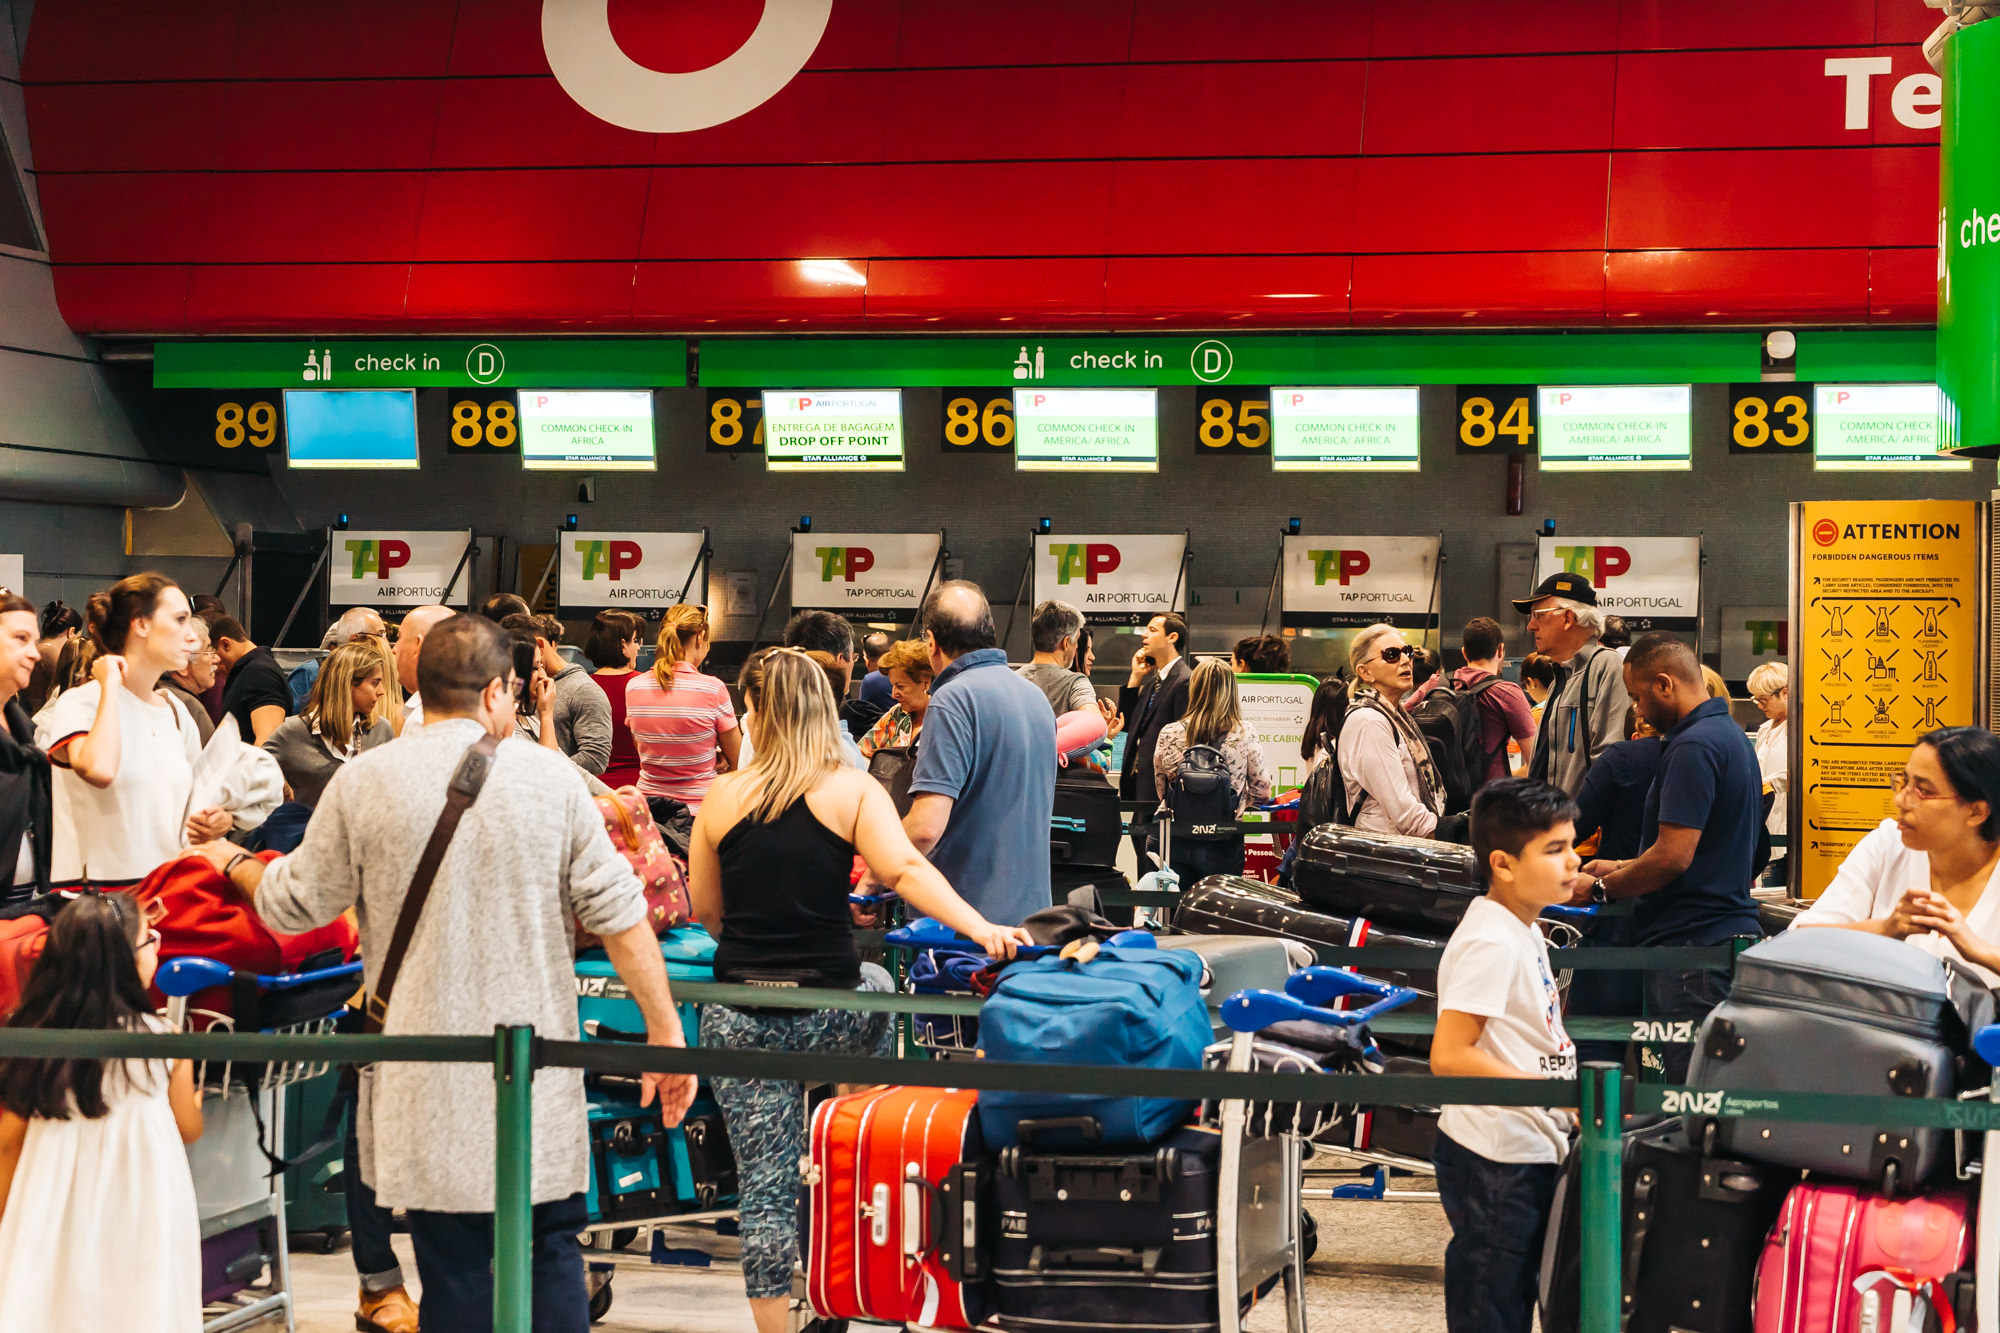 The long lines at TAP Air Portugal Check-in in Lisbon